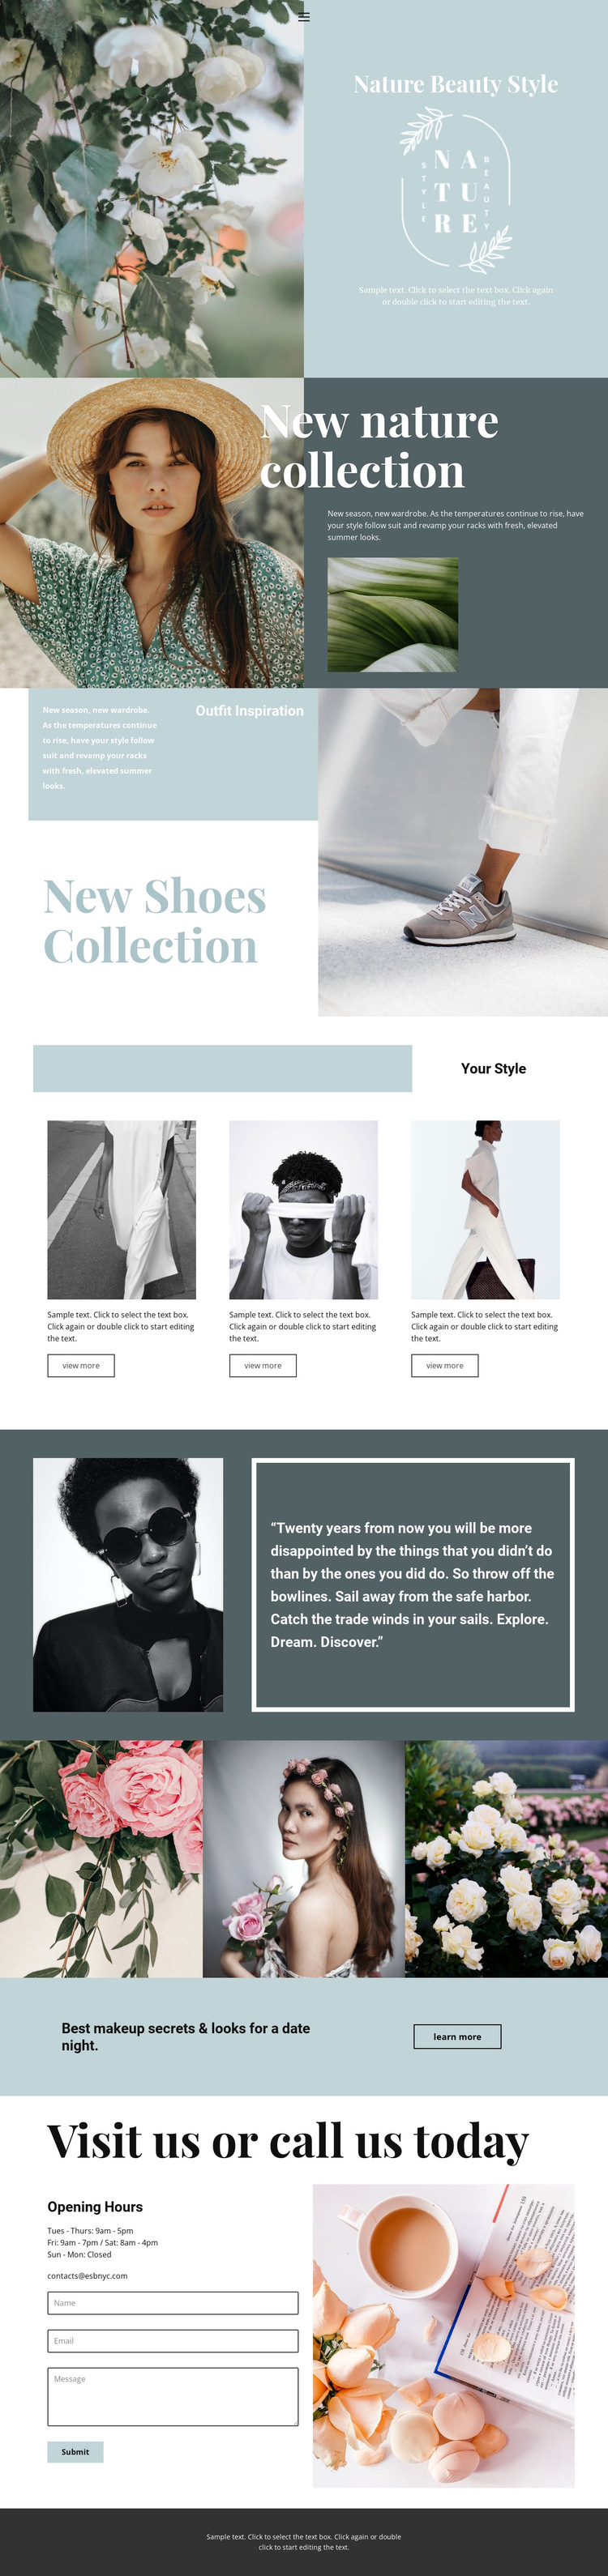 Nature collection HTML5 Template